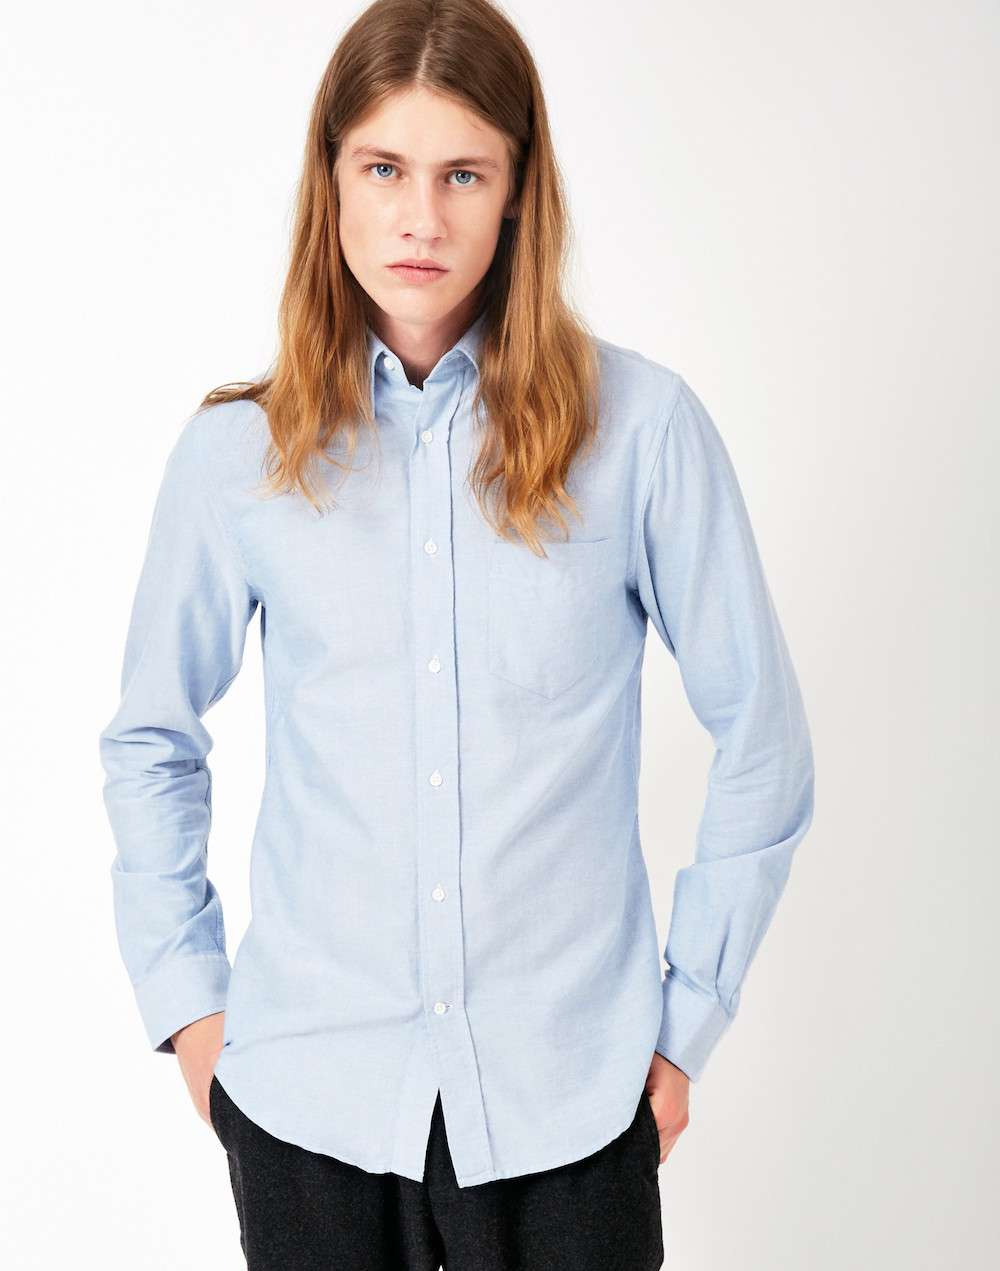 GANT RUGGER Textured Shirt Jacket Blue mens